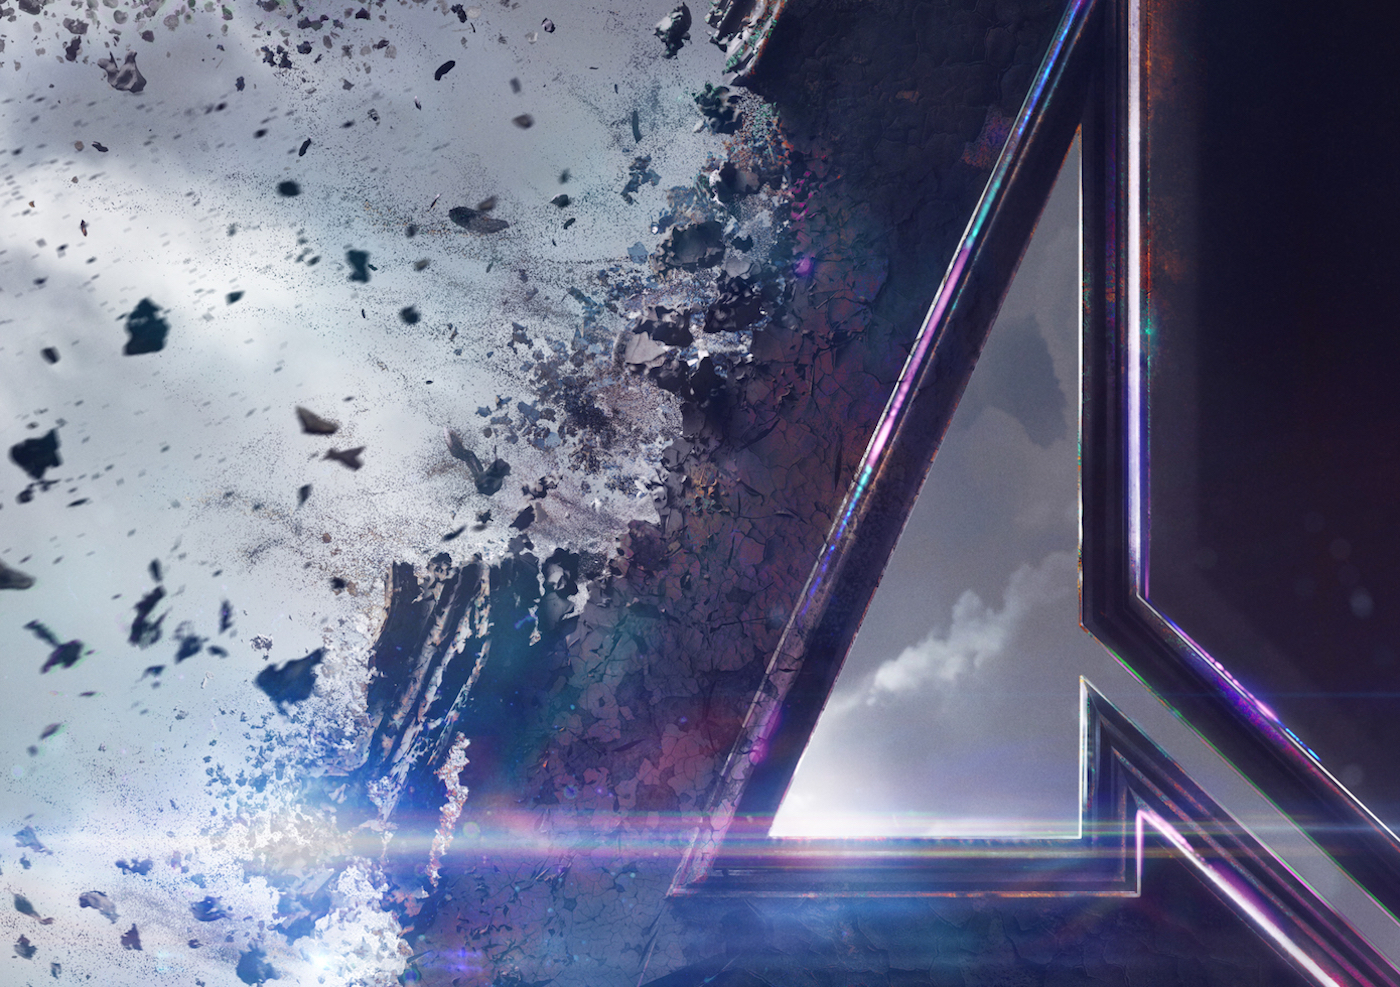 Avengers Endgame Poster Reveals Surprise Release Date The Credits